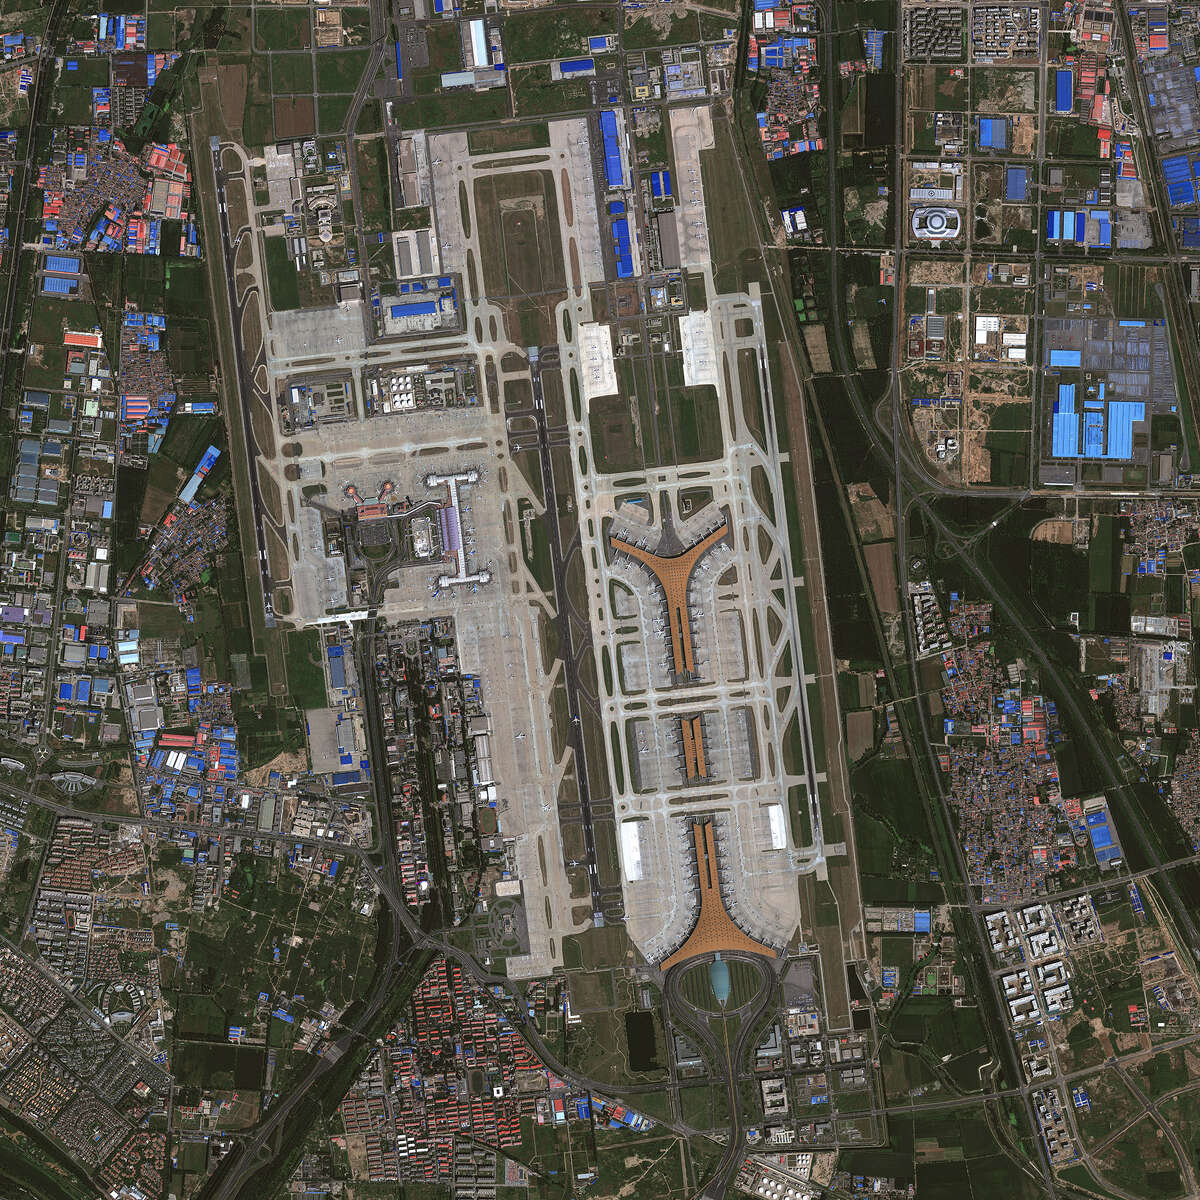 No. 5 - Beijing Capital International Airport